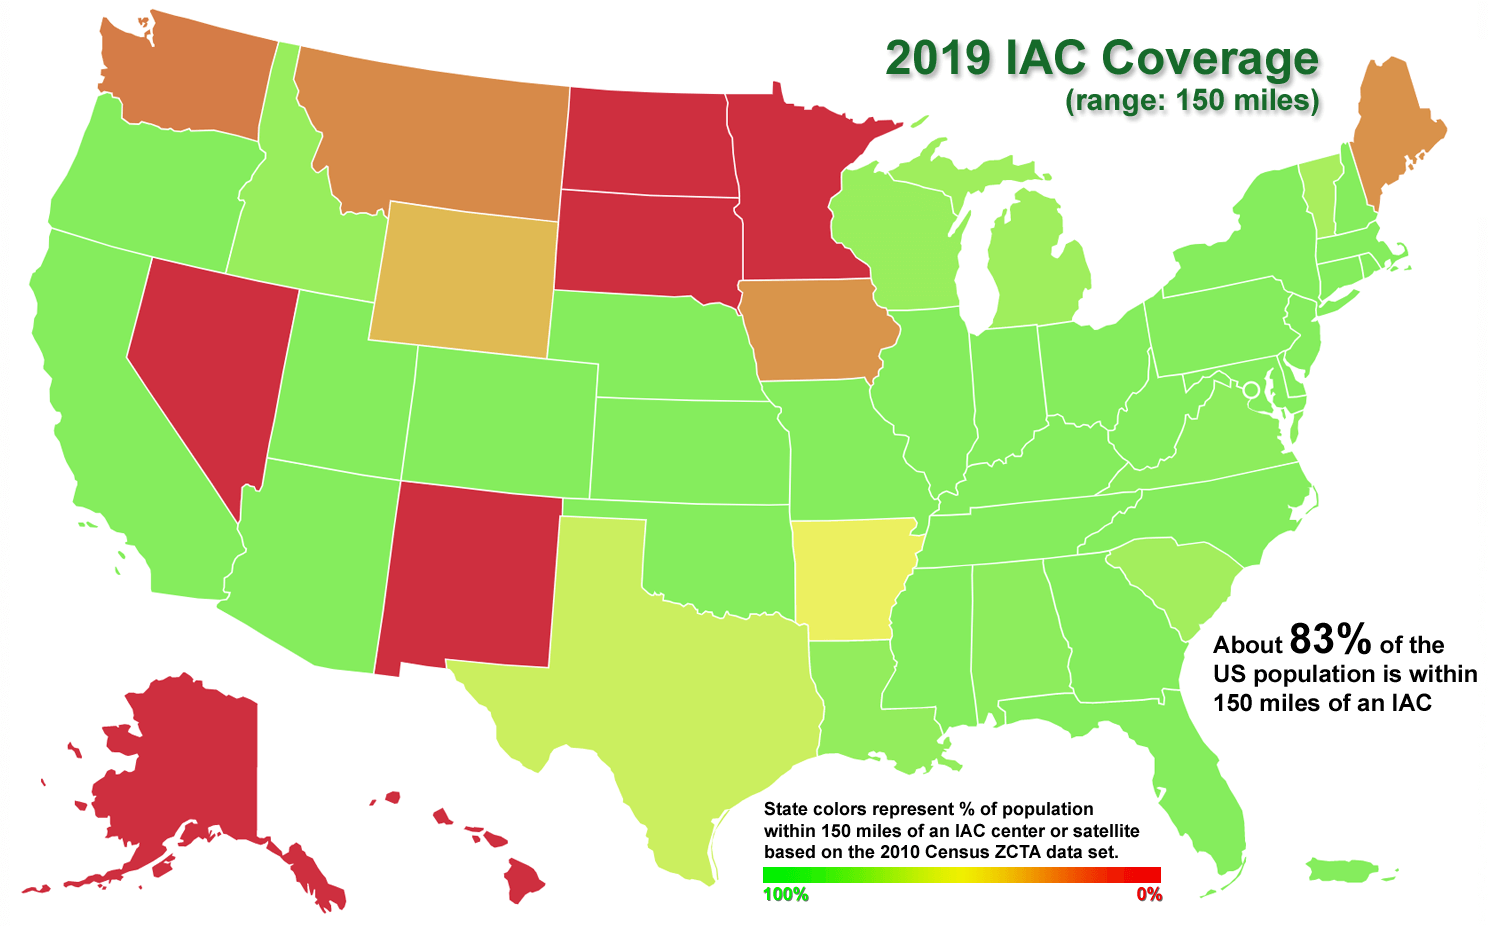 IAC Center Coverage Map